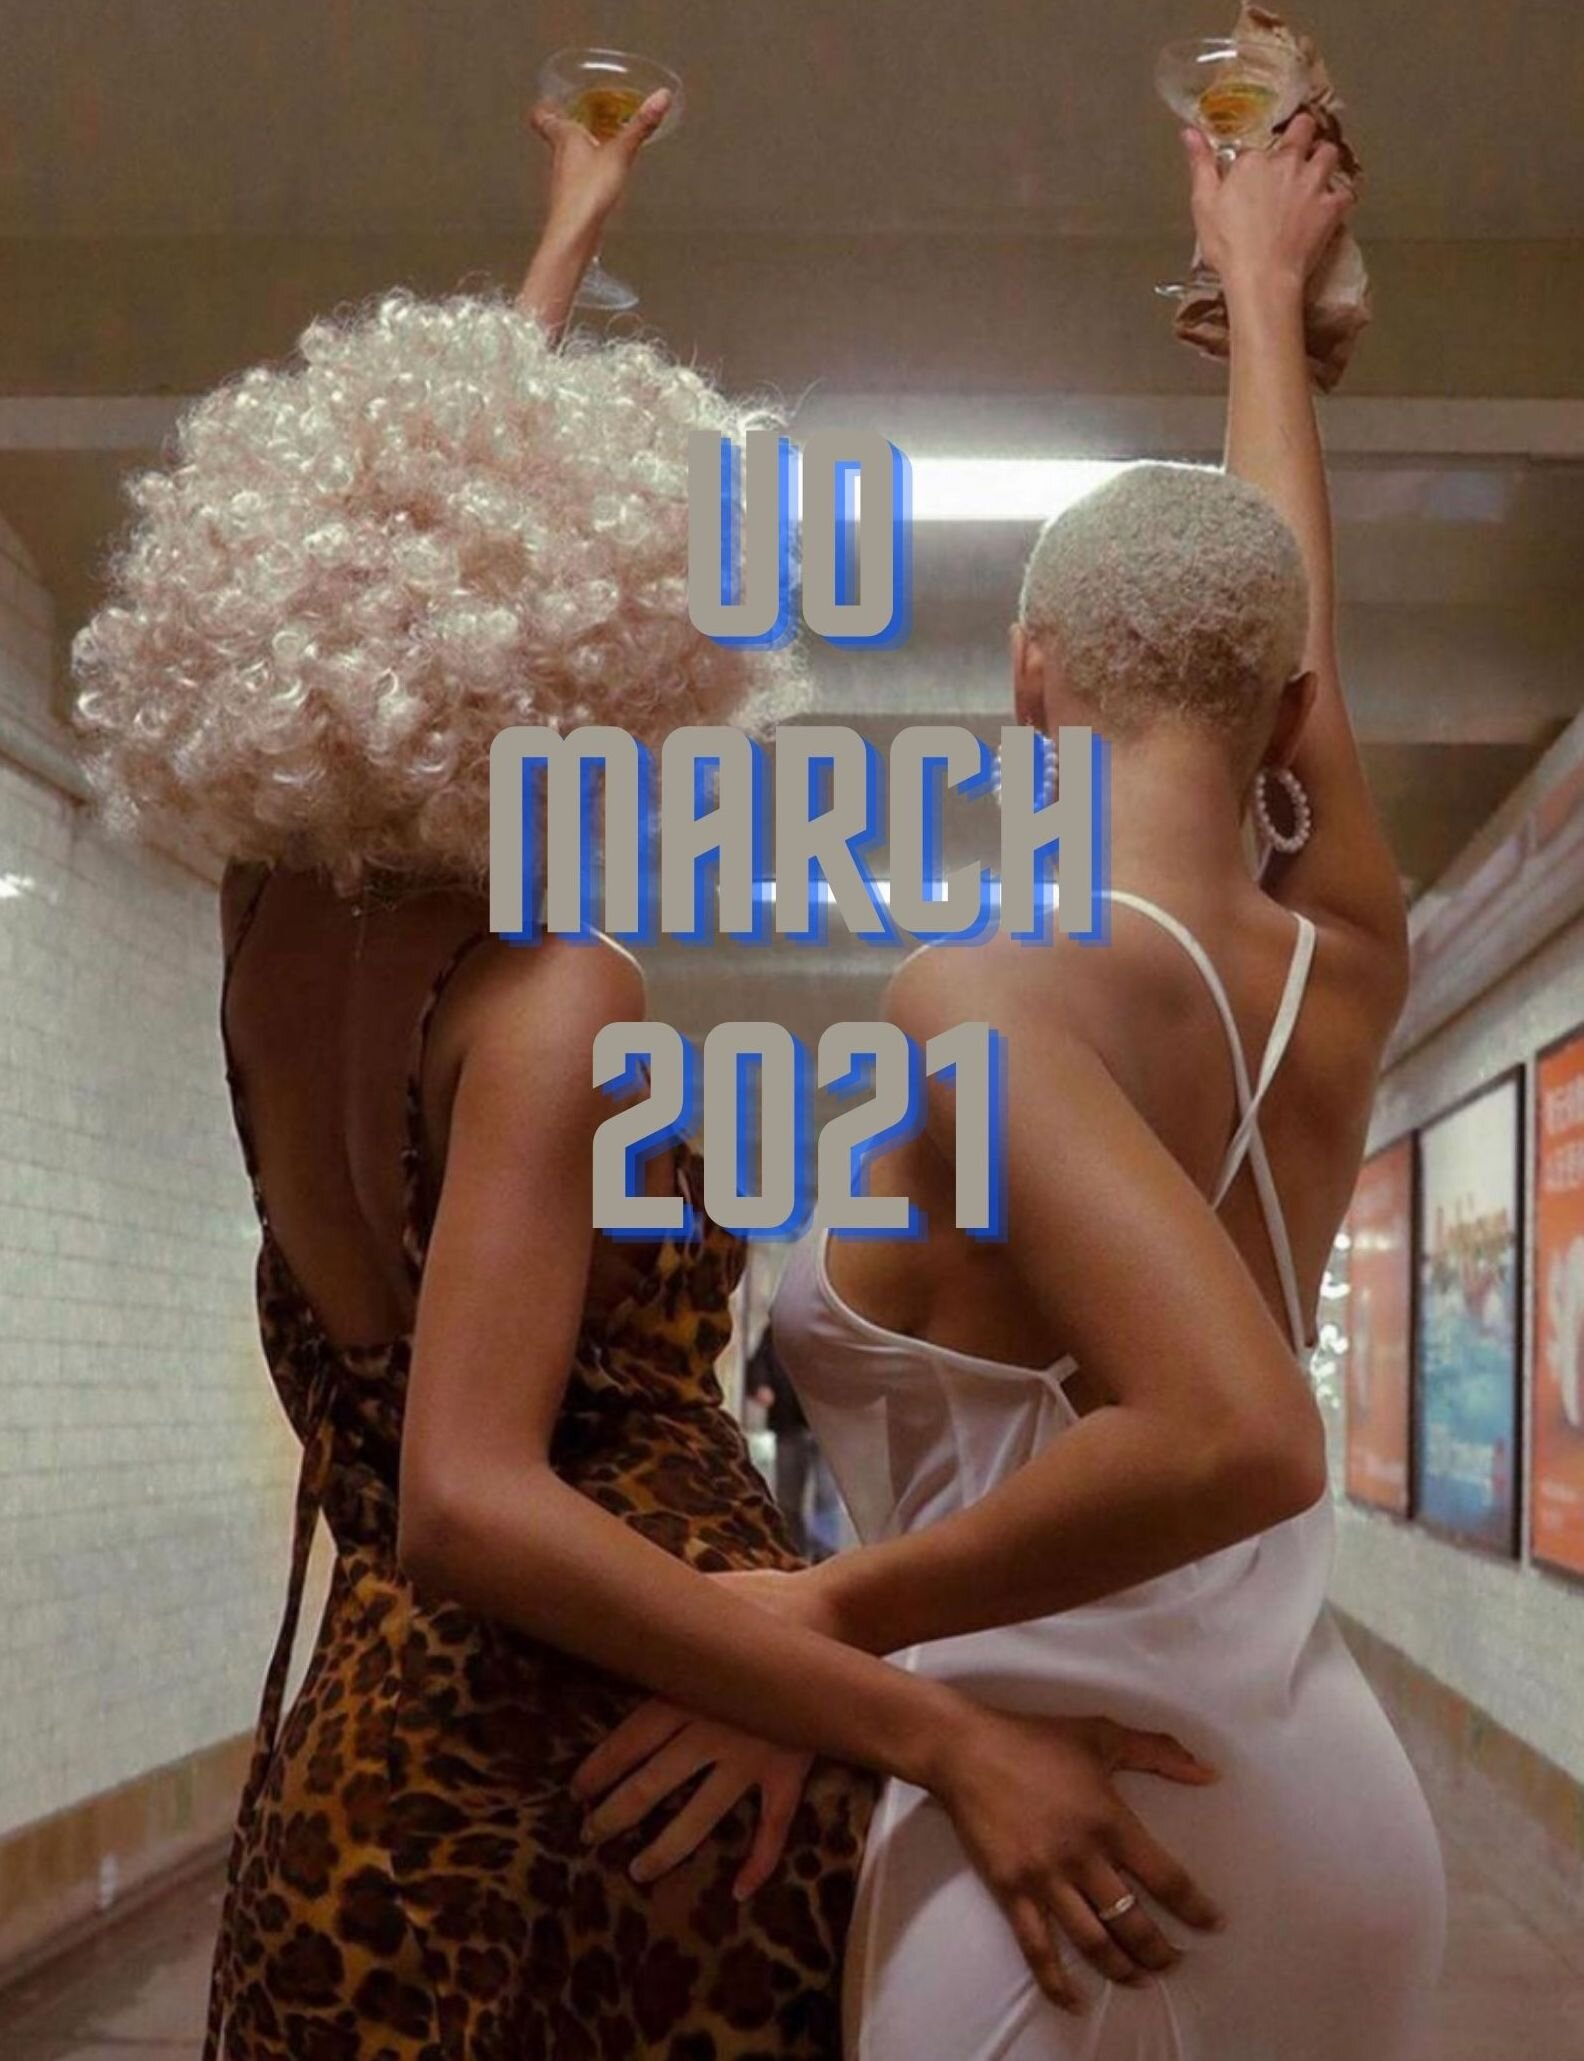 - URBAN OUTFITTERS:+January picks: Here. (20 ITEMS)+February picks: Here. (20 ITEMS)+April picks: Here. (20 ITEMS)